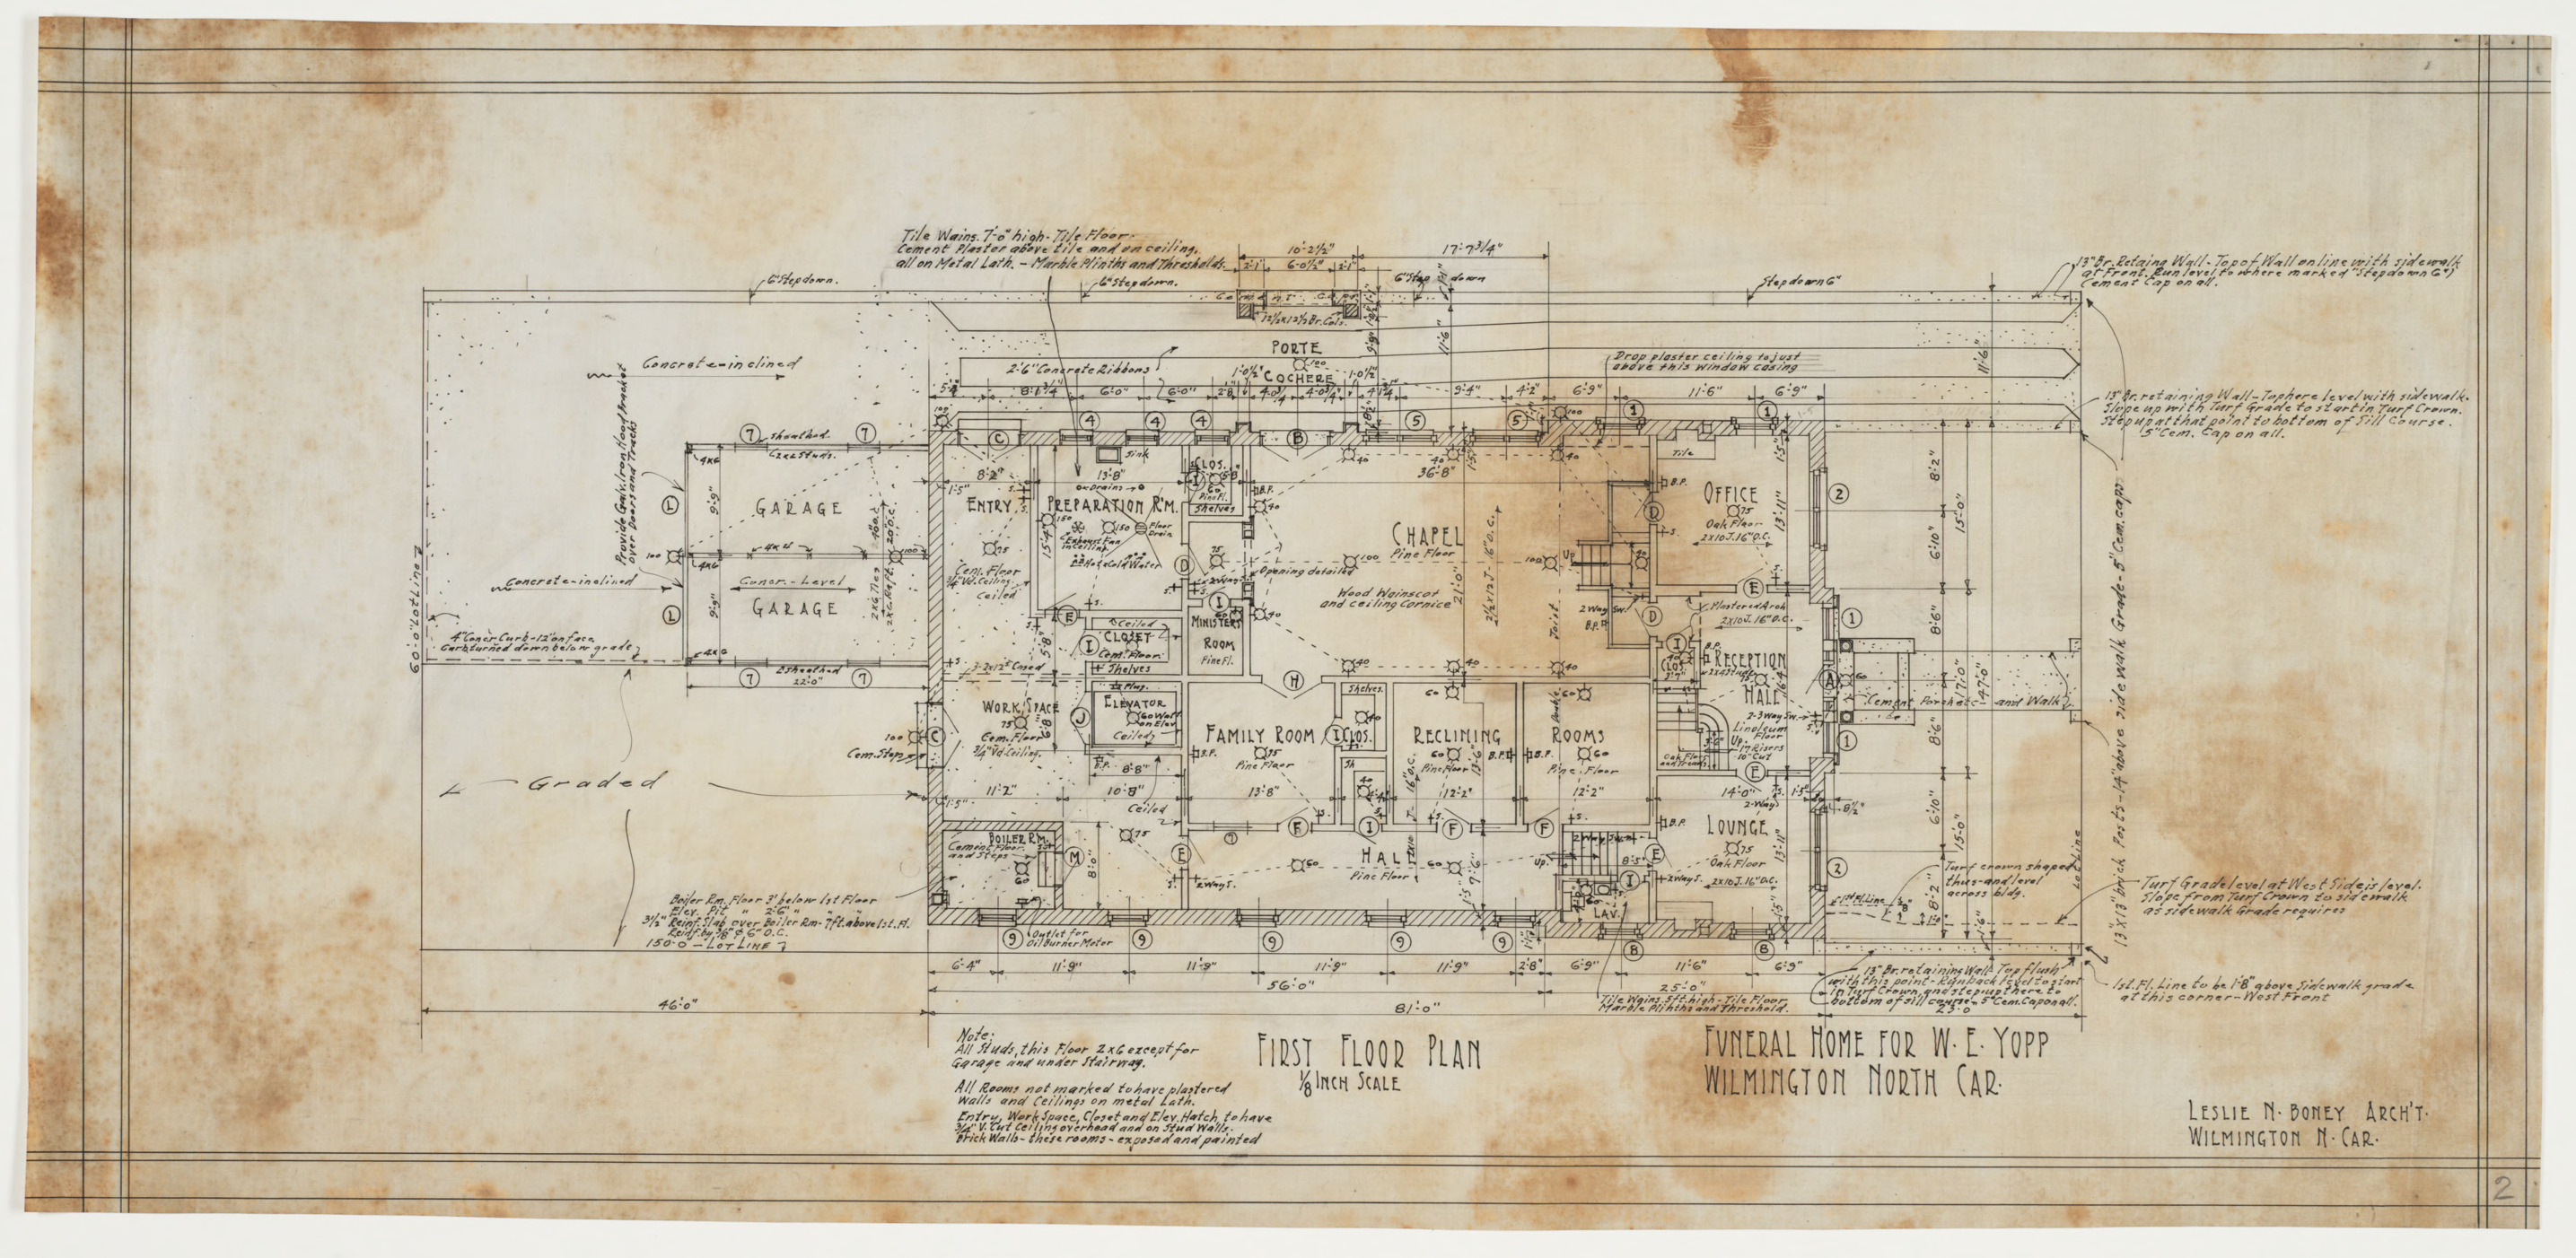 Funeral Home Floor Plans: First Floor Plan (W. E. Yopps Funeral Home (Wilmington, N